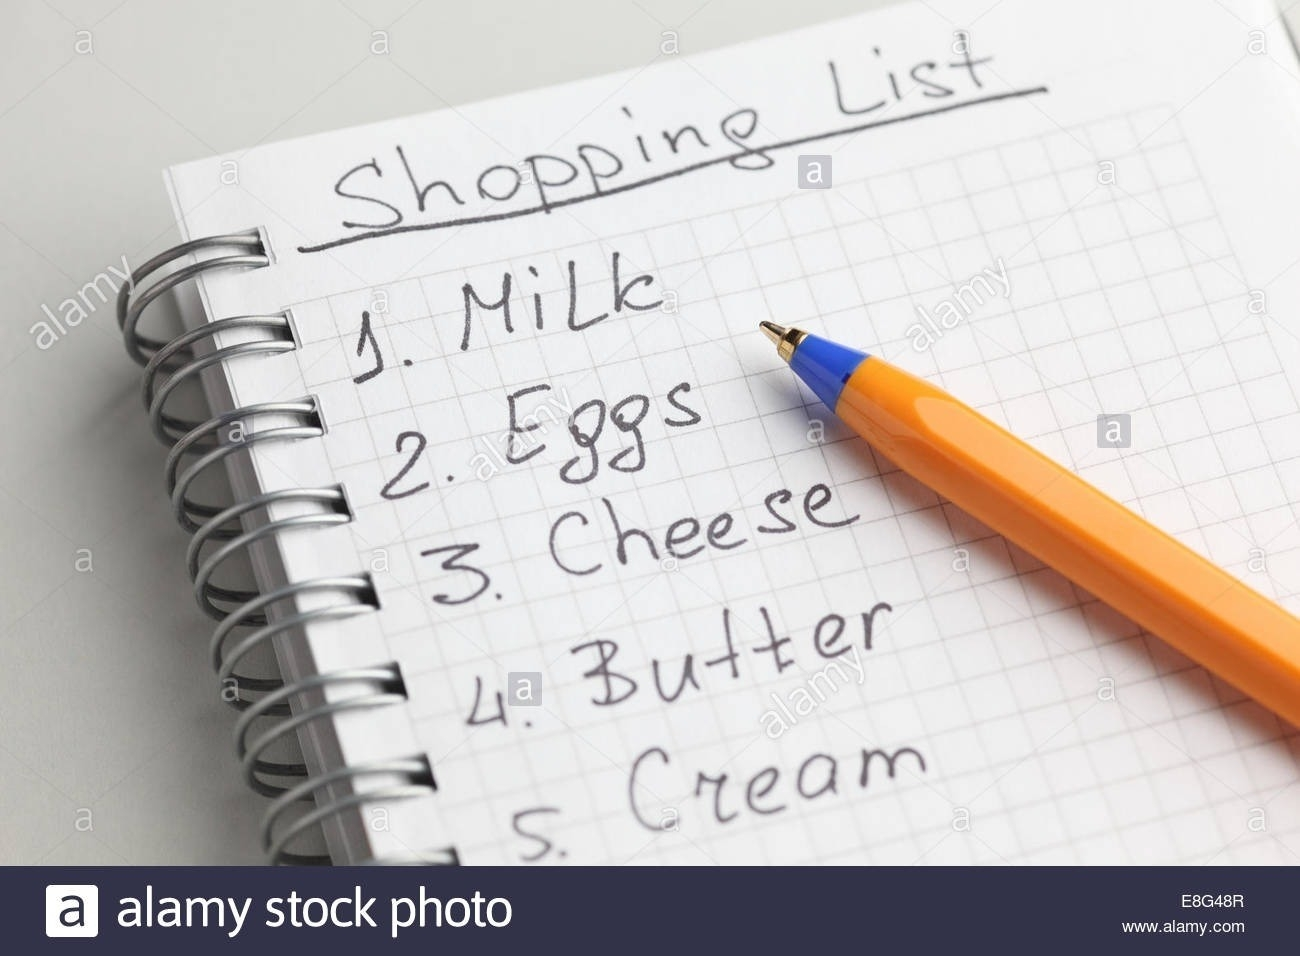 Handwritten Grocery List | World Of Example regarding Handwritten Grocery List 22854